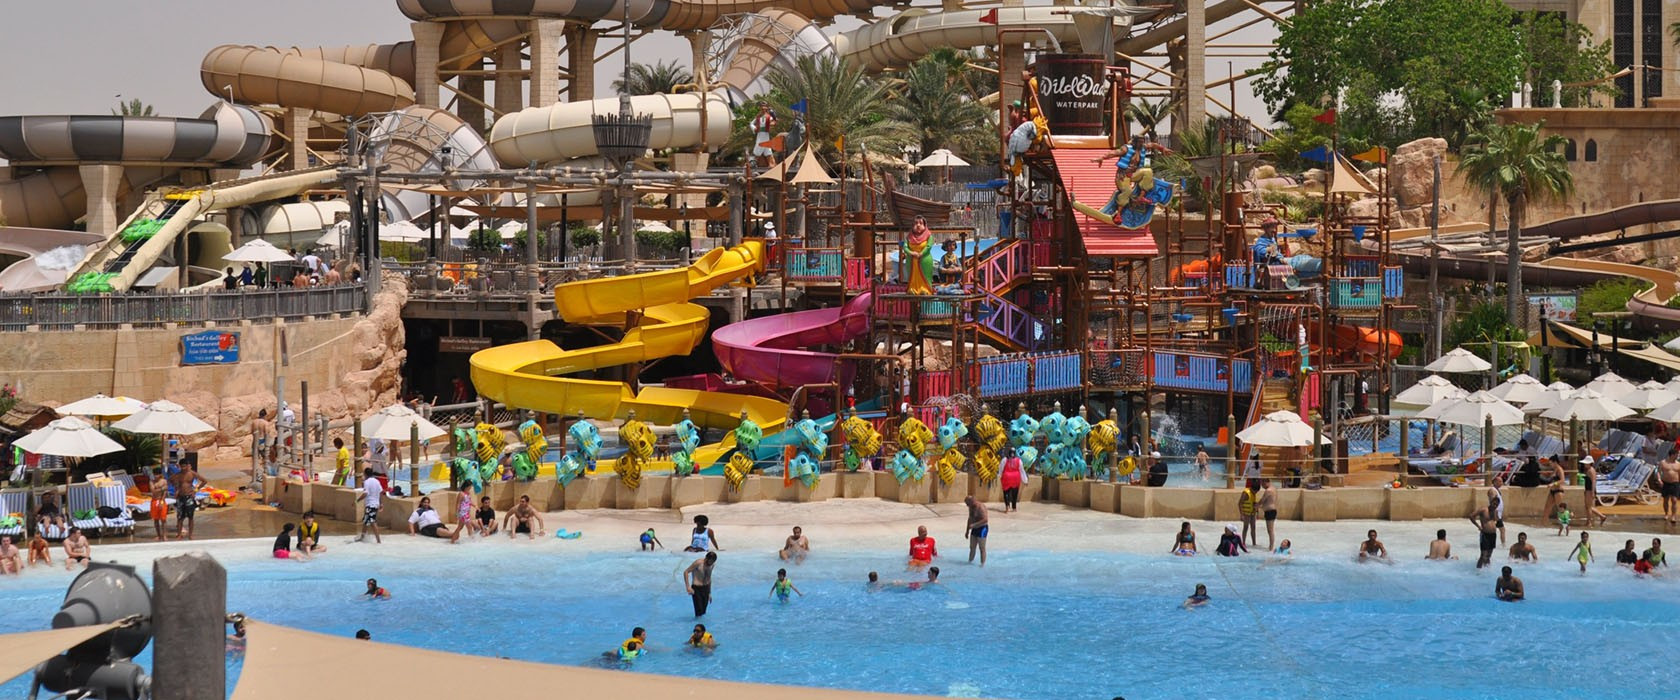 WILD WADI WATERPARK DUBAI Outdoor water park with rides & slides